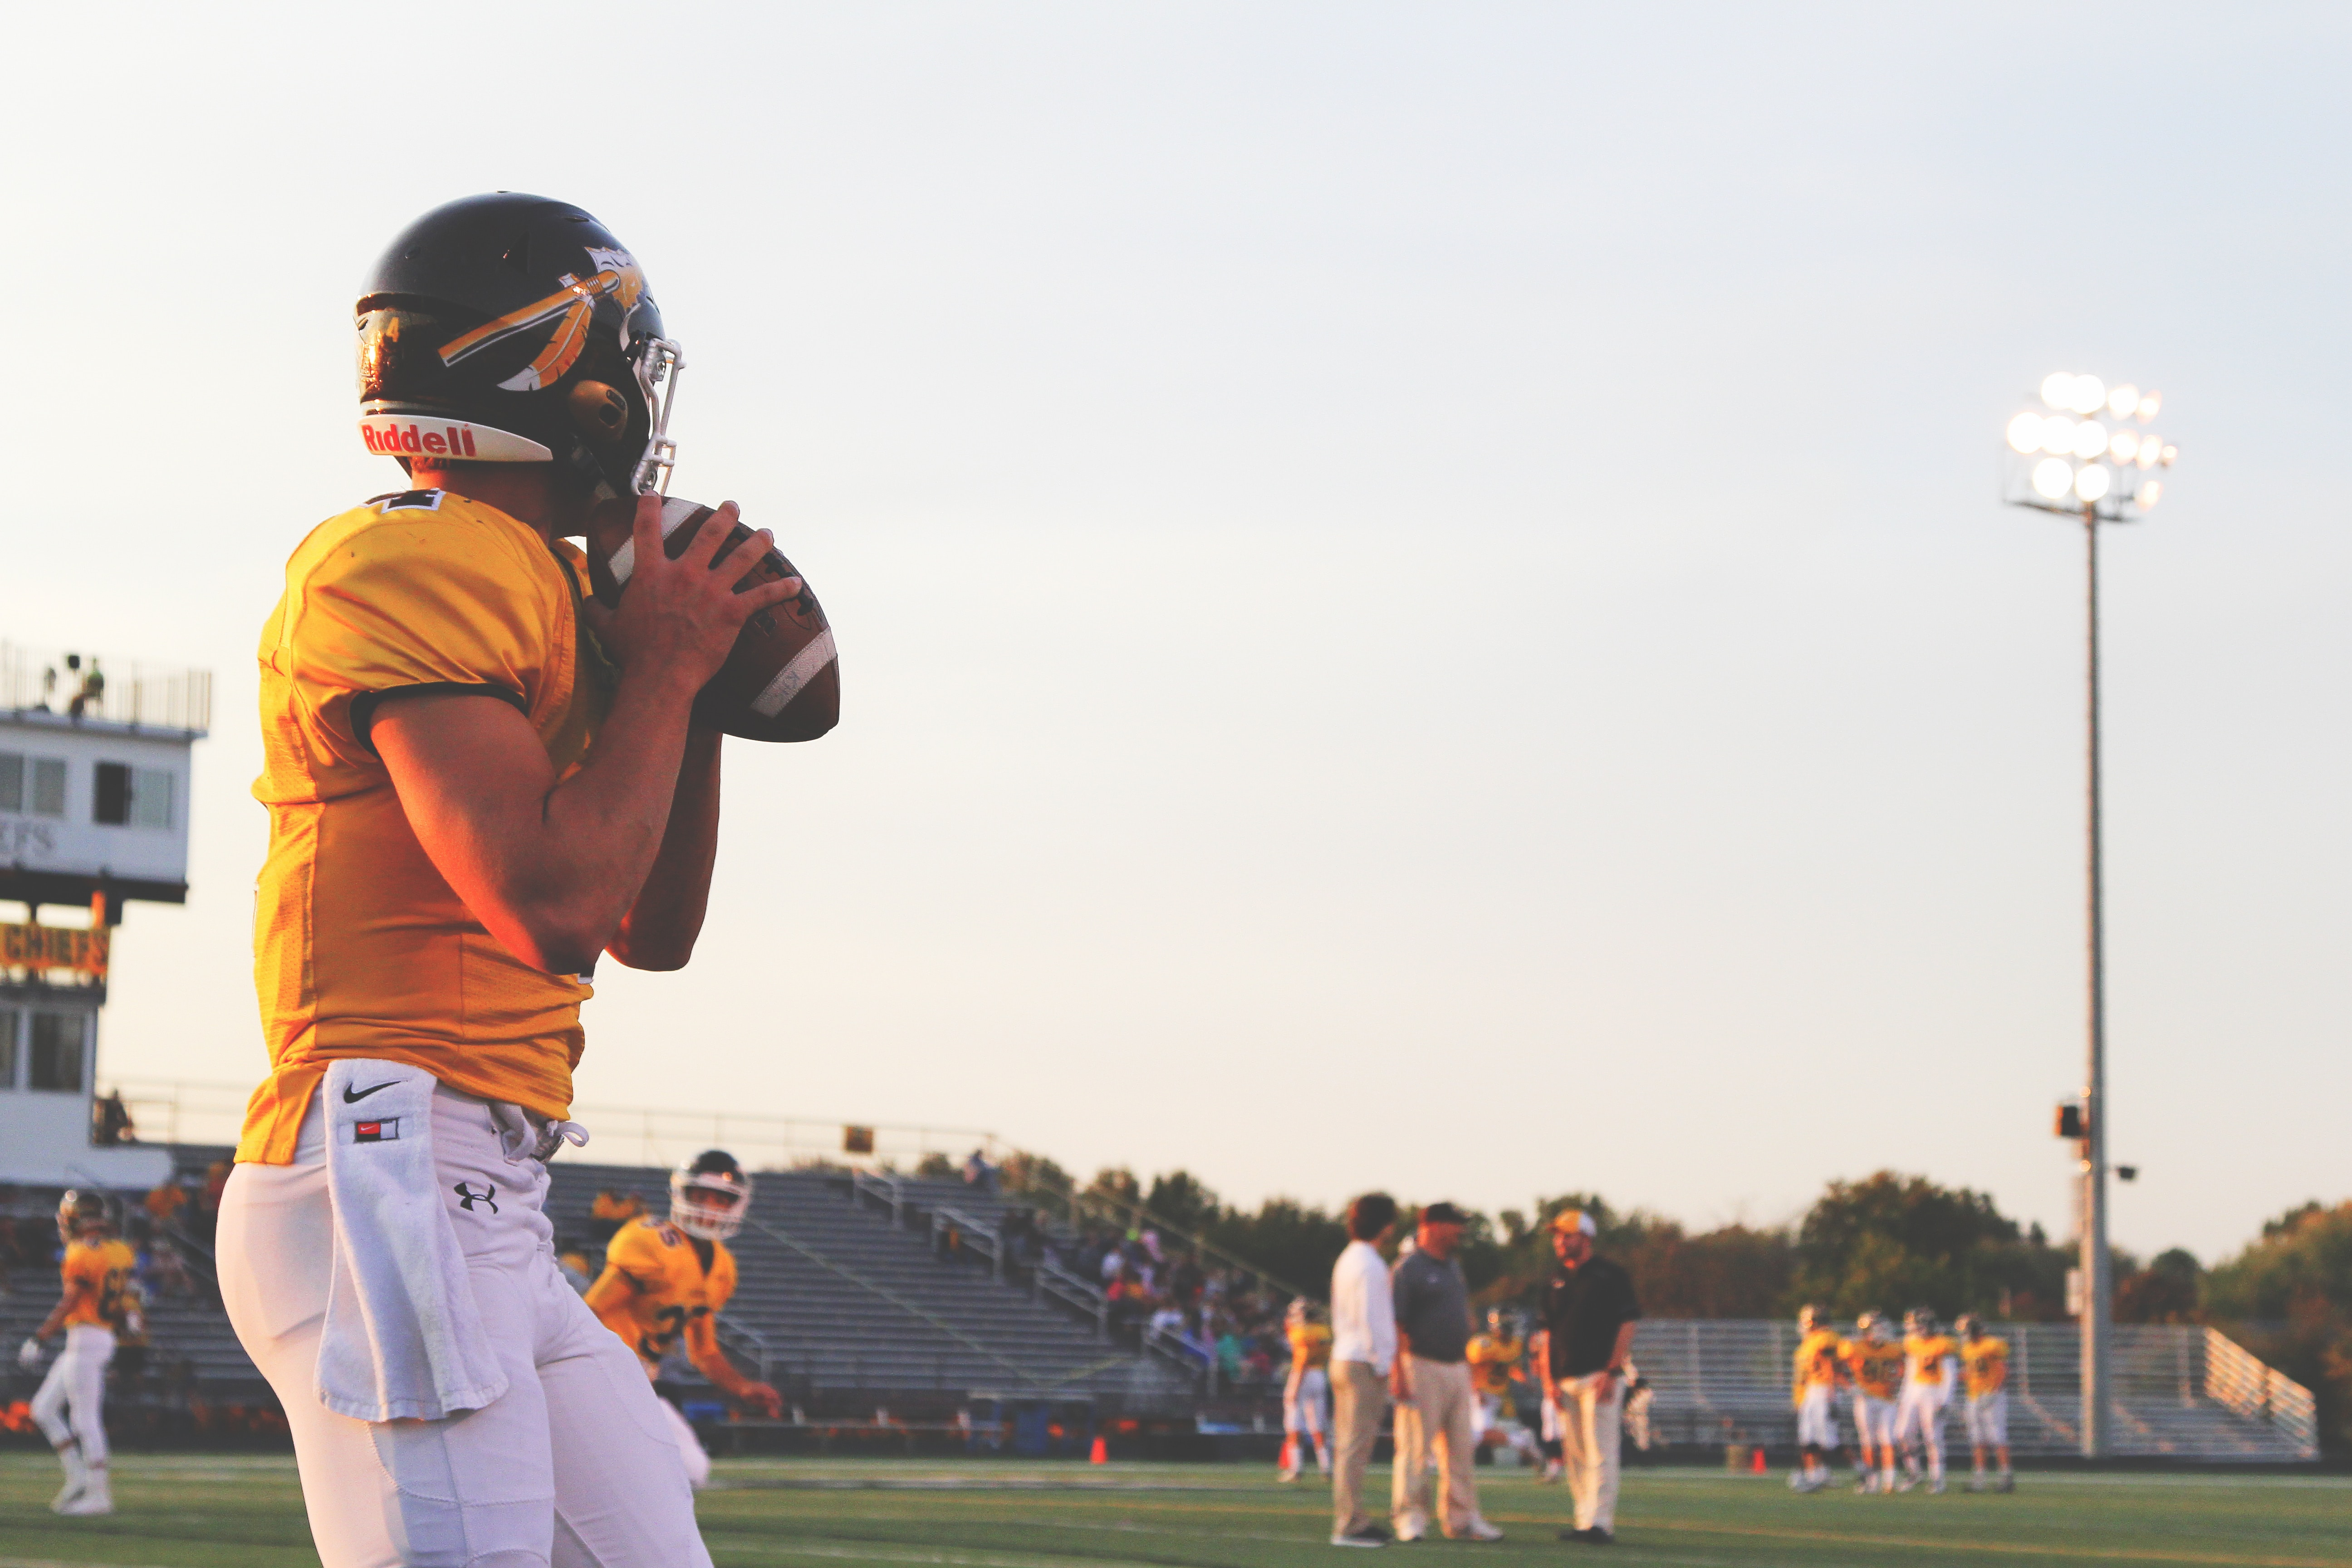 High school quarterback in yellow jersey getting ready to throw a football.